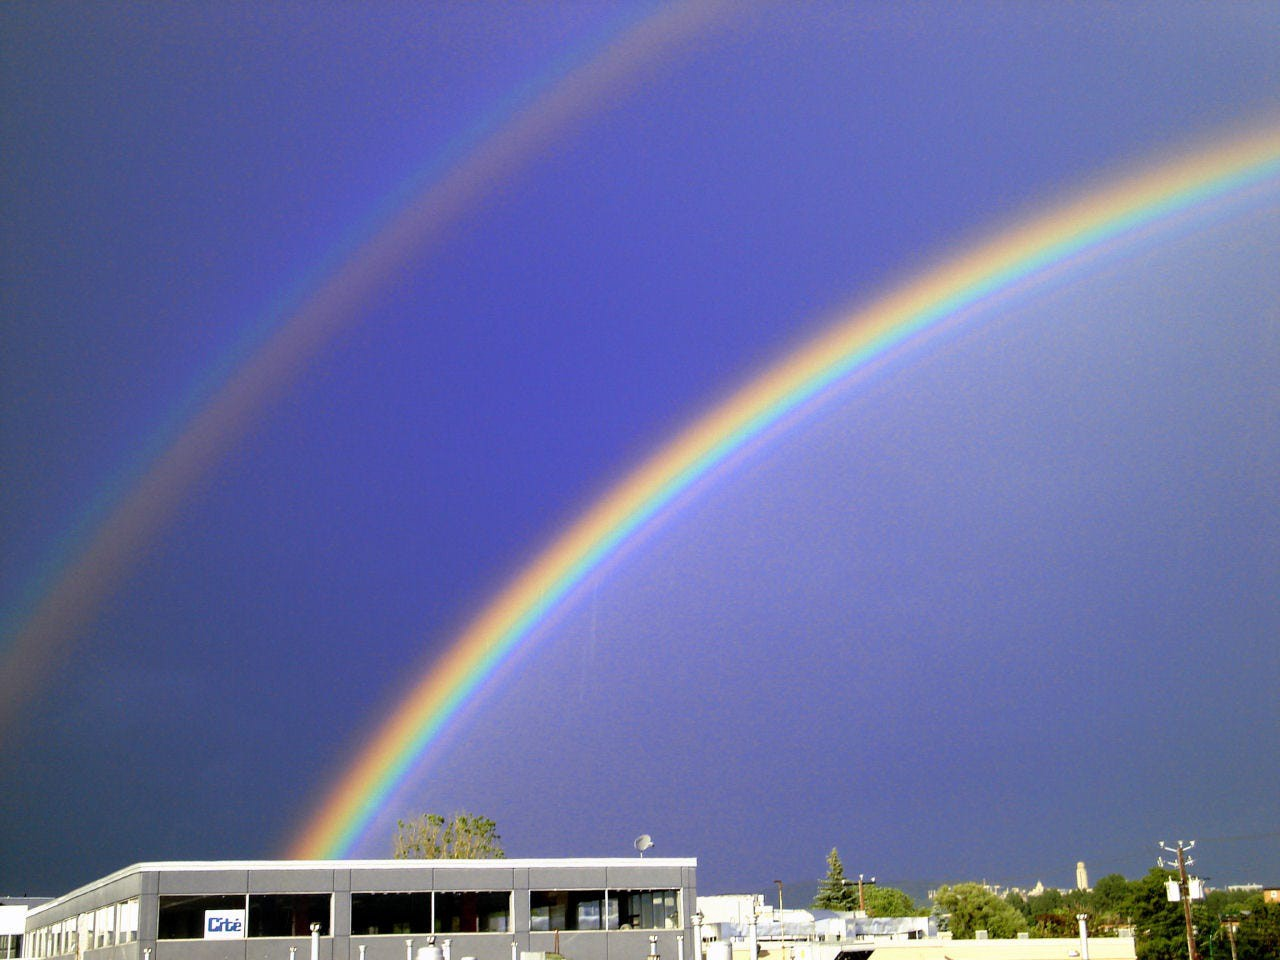 Double rainbow all the way! This viral video stole the attention of millions as man basks in the amazement of two rainbows